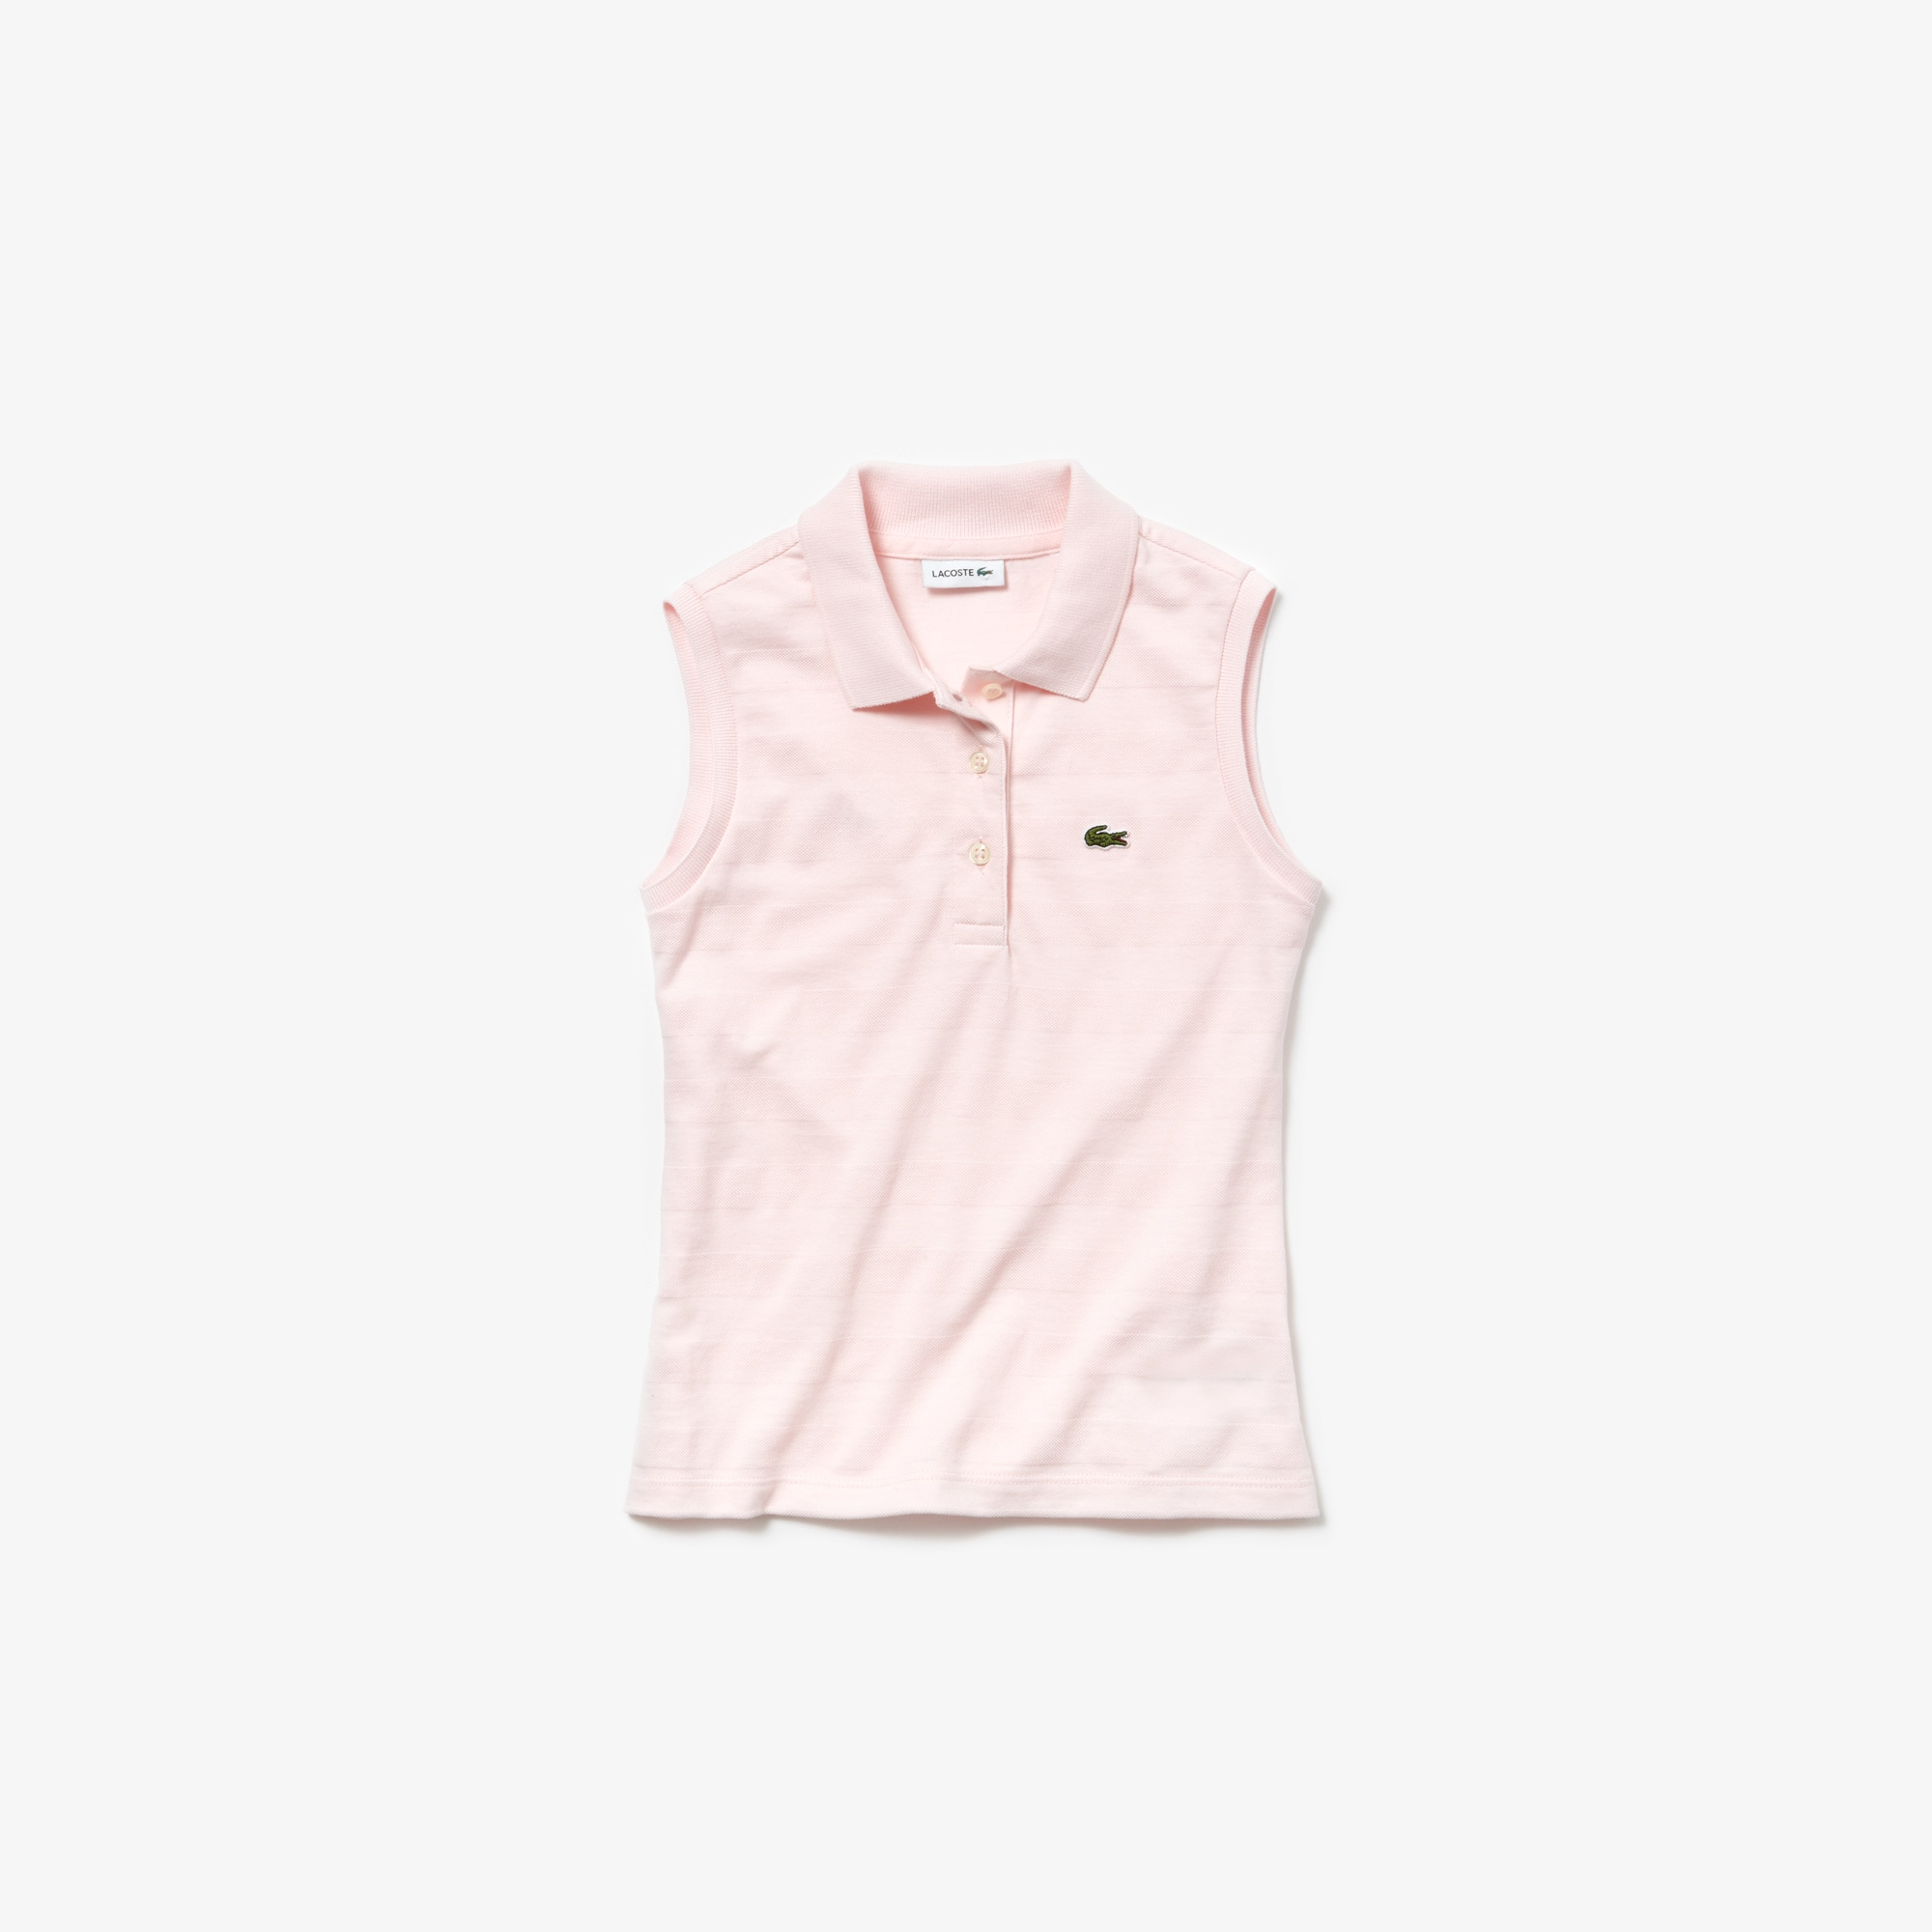 39f03de66 Girl's Polo Shirts | The Lacoste Polo for Kids | LACOSTE